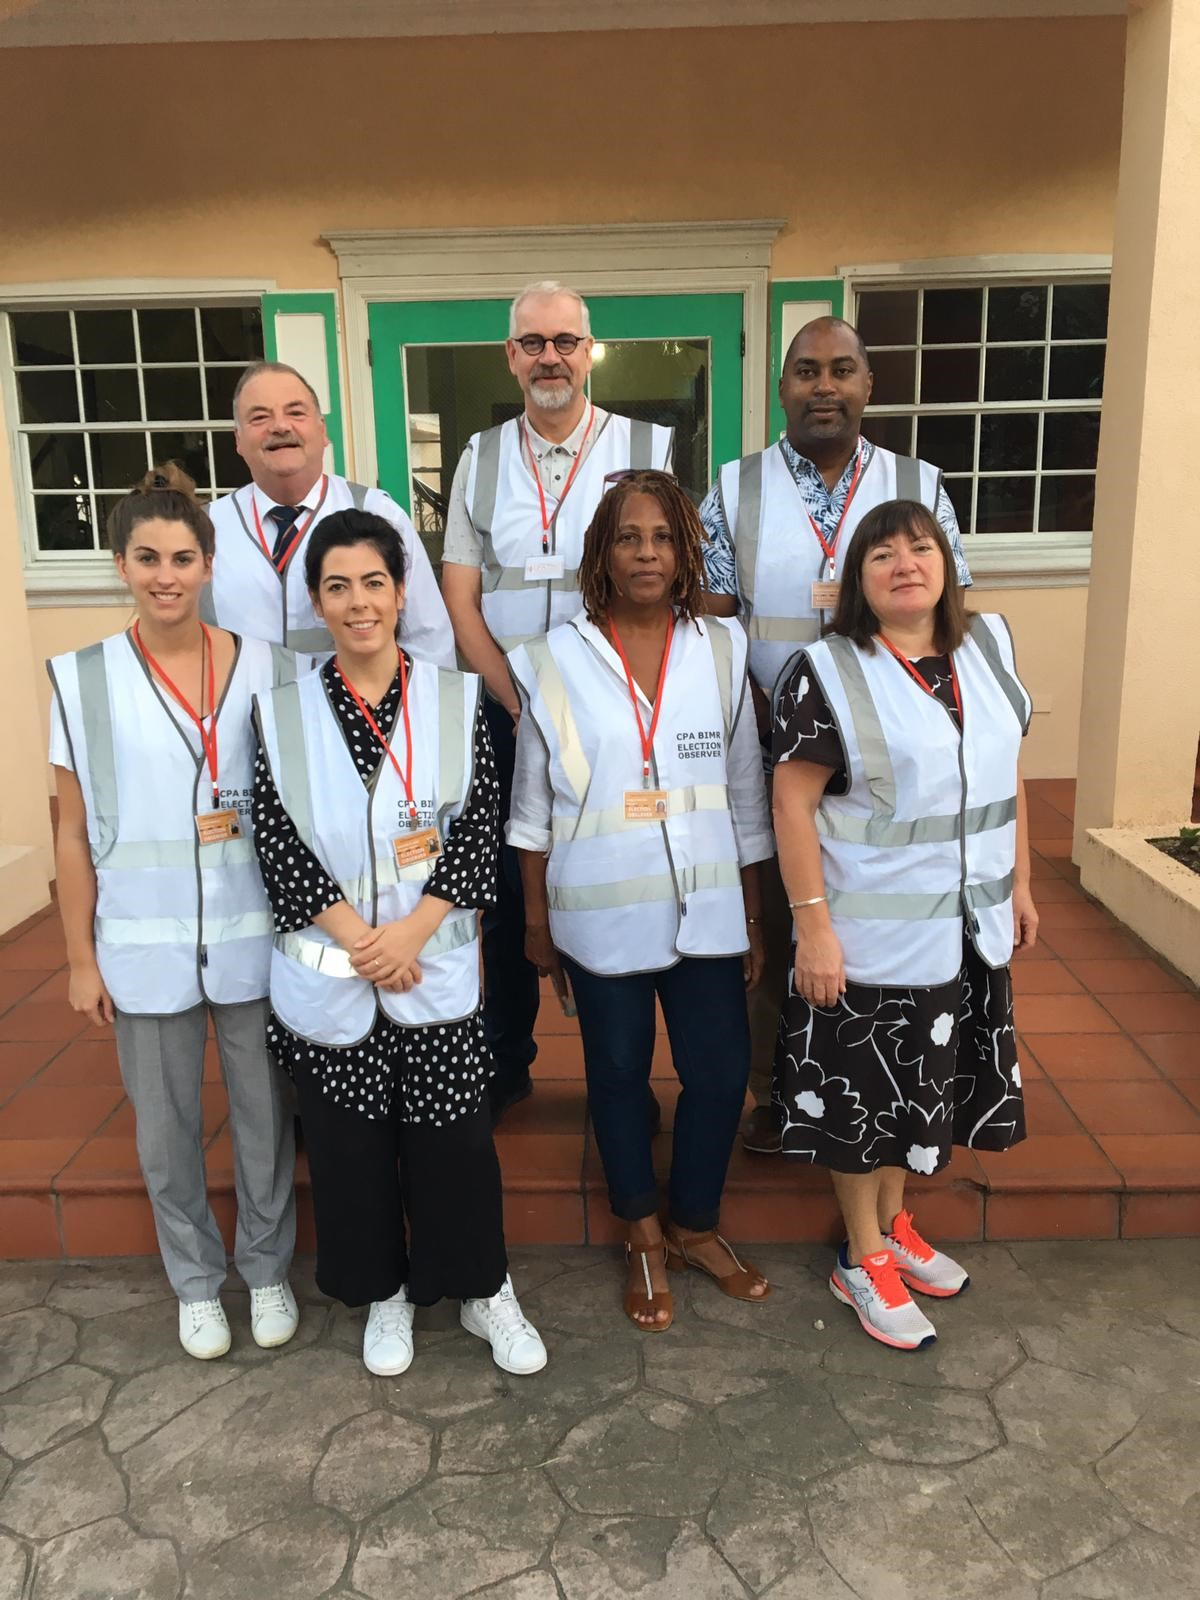 The international observers (from back left clockwise) Martyn Perkins MHK, Isle of Man; Harald Jepsen, Denmark; Hon Julian Robinson MP, Jamaica, Head of Mission; Anne Marlborough, Ireland; Aurjul Wilson, Anguilla; Mariam El-Azm, France; Felicity Newall, UK